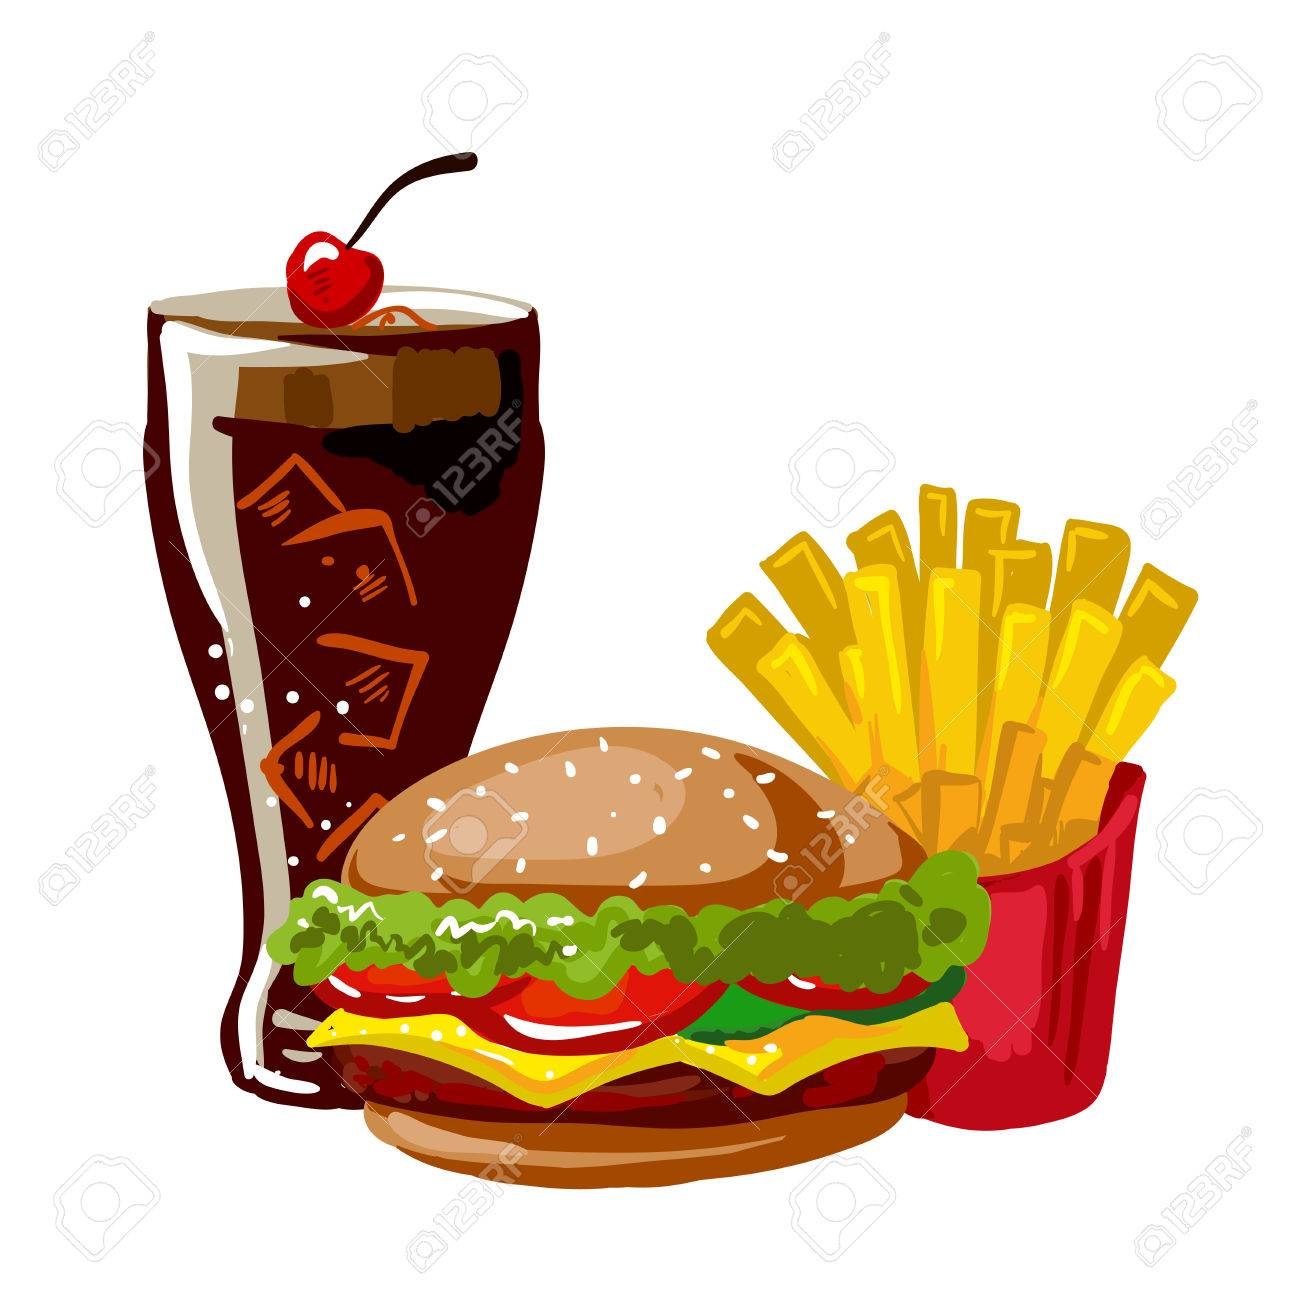 Hamburger or cheeseburger, french fries and glass with cola.